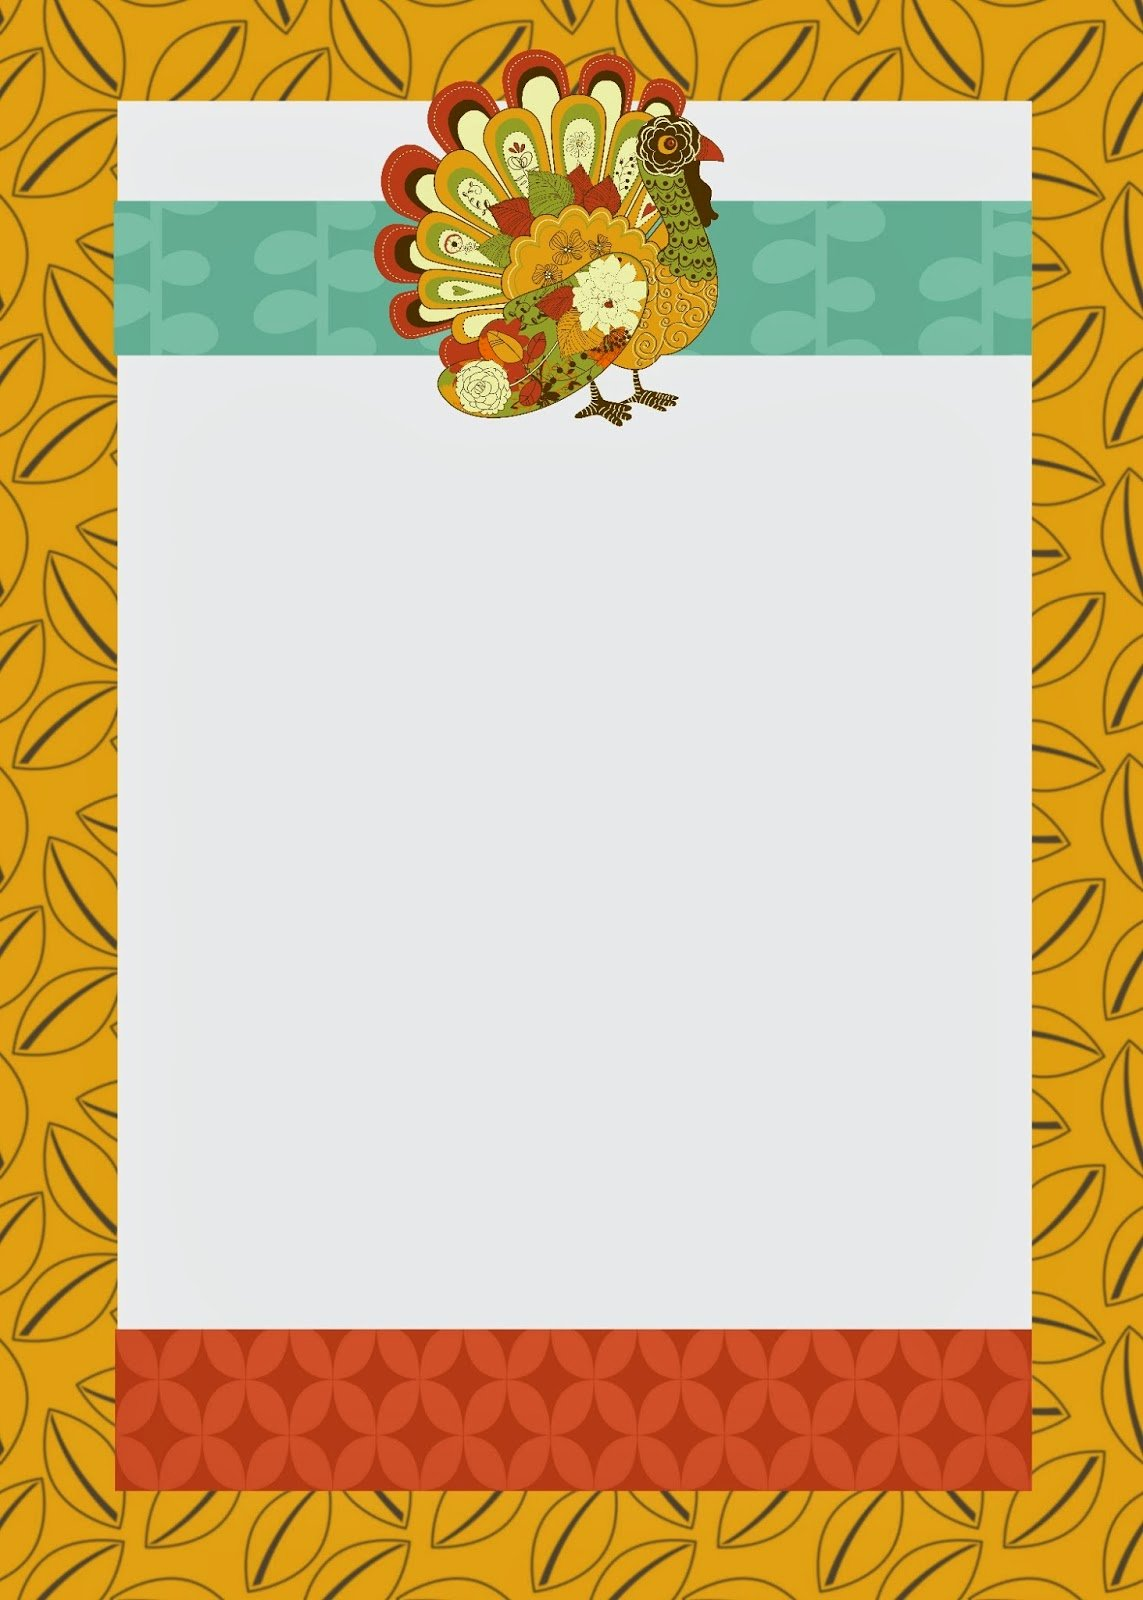 Mexican Potluck Signup Sheet Elegant Mexican Potluck Sign Sheet